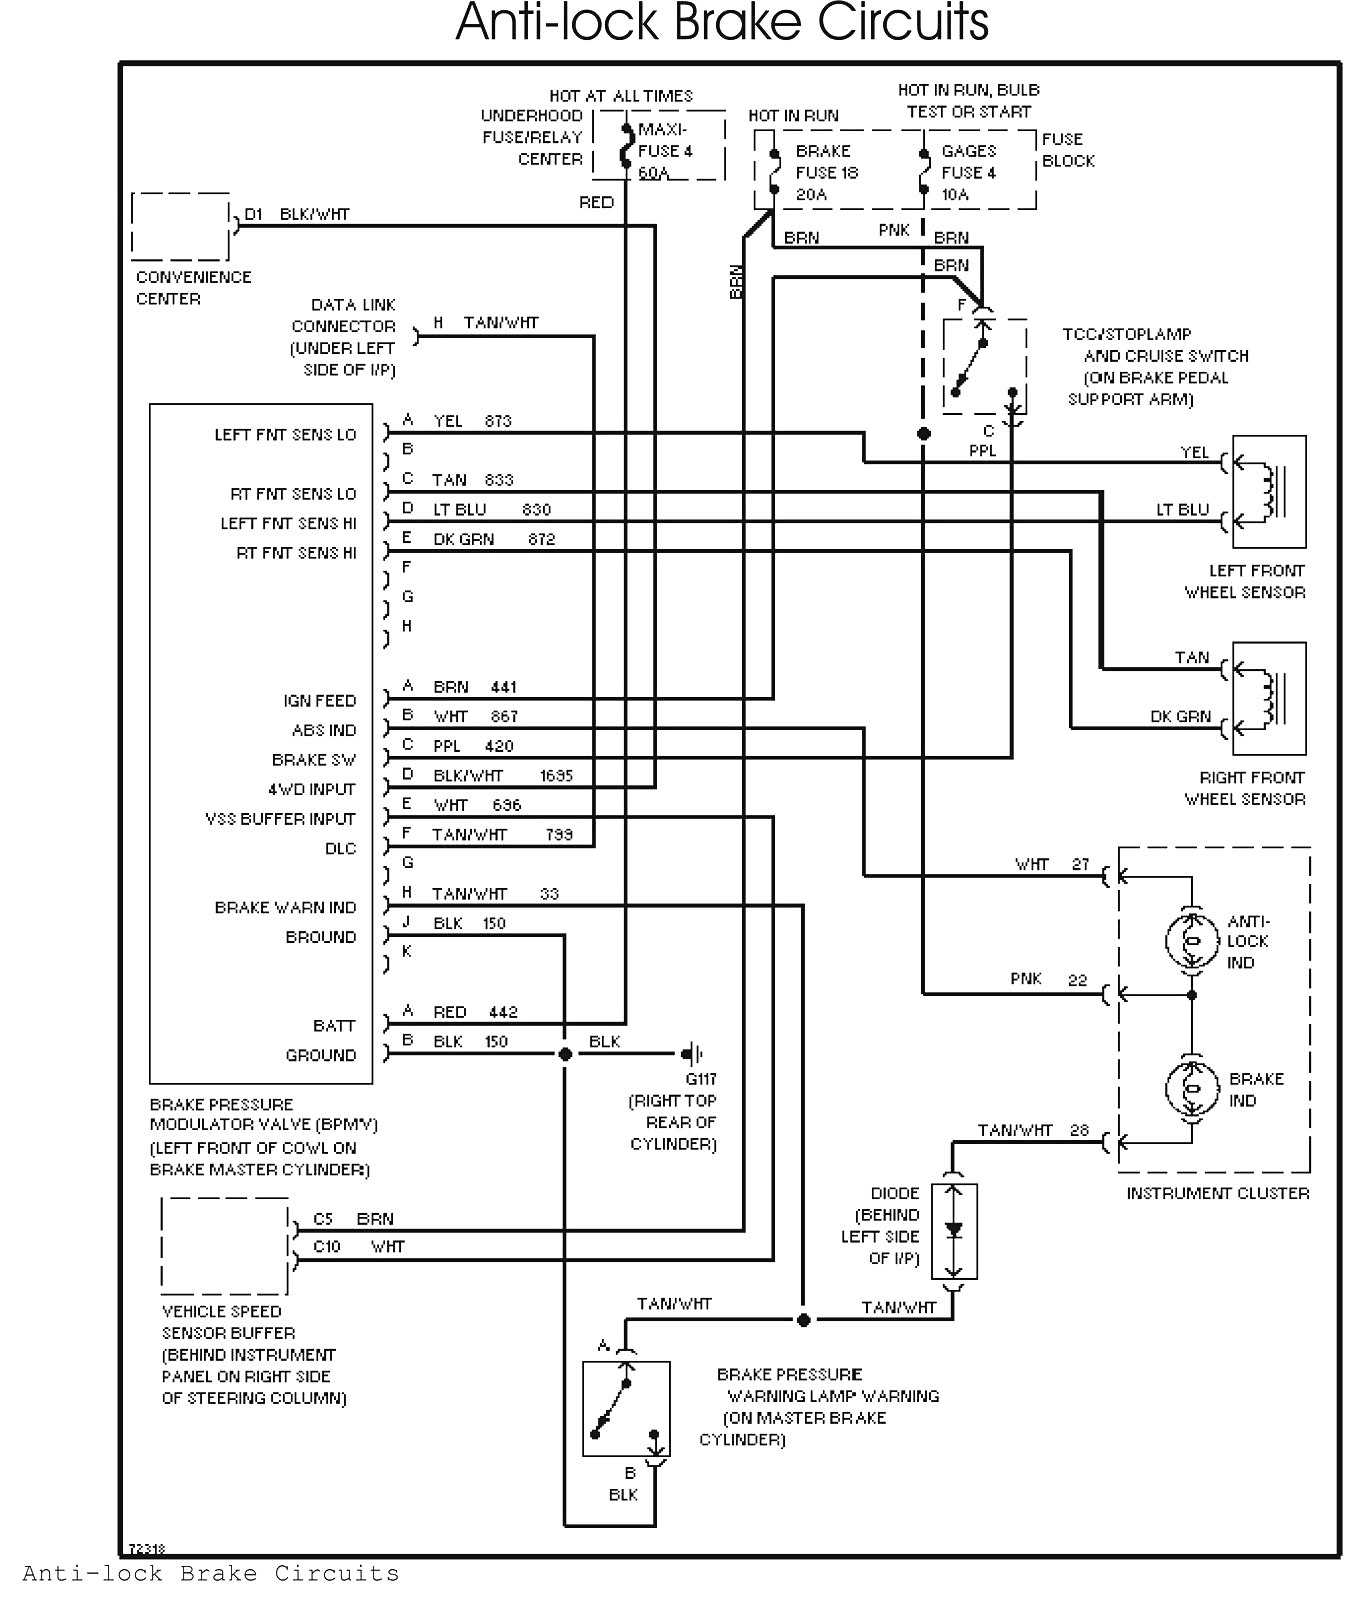 curt discovery brake controller wiring diagram Download-Wiring Diagram Tekonsha Prodigy P3 Trailer Brake Controller New Jaguar Incredible P2 For Hayman Reese And 4-a